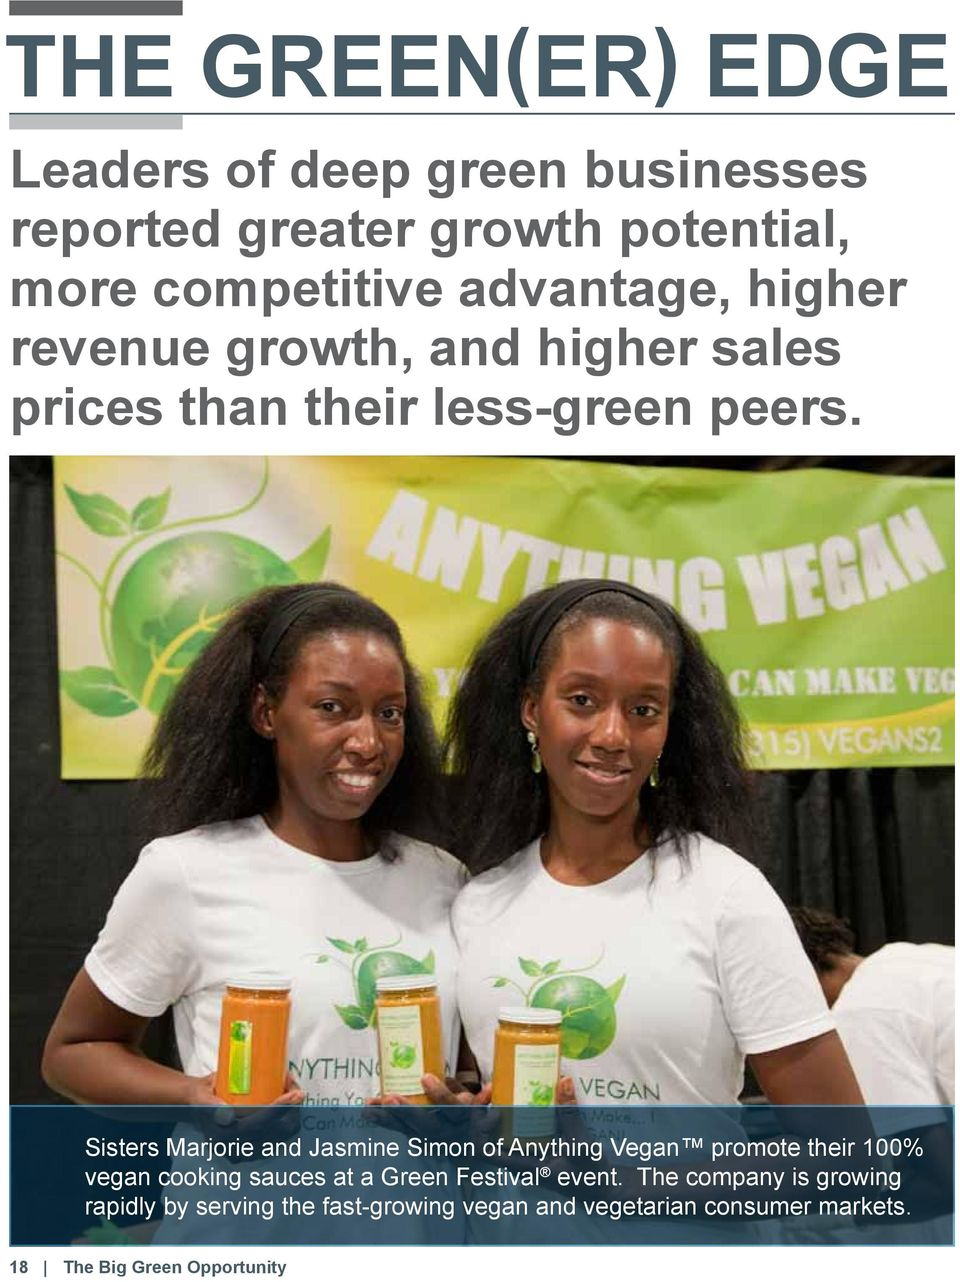 Sisters Marjorie and Jasmine Simon of Anything Vegan promote their 100% vegan cooking sauces at a Green